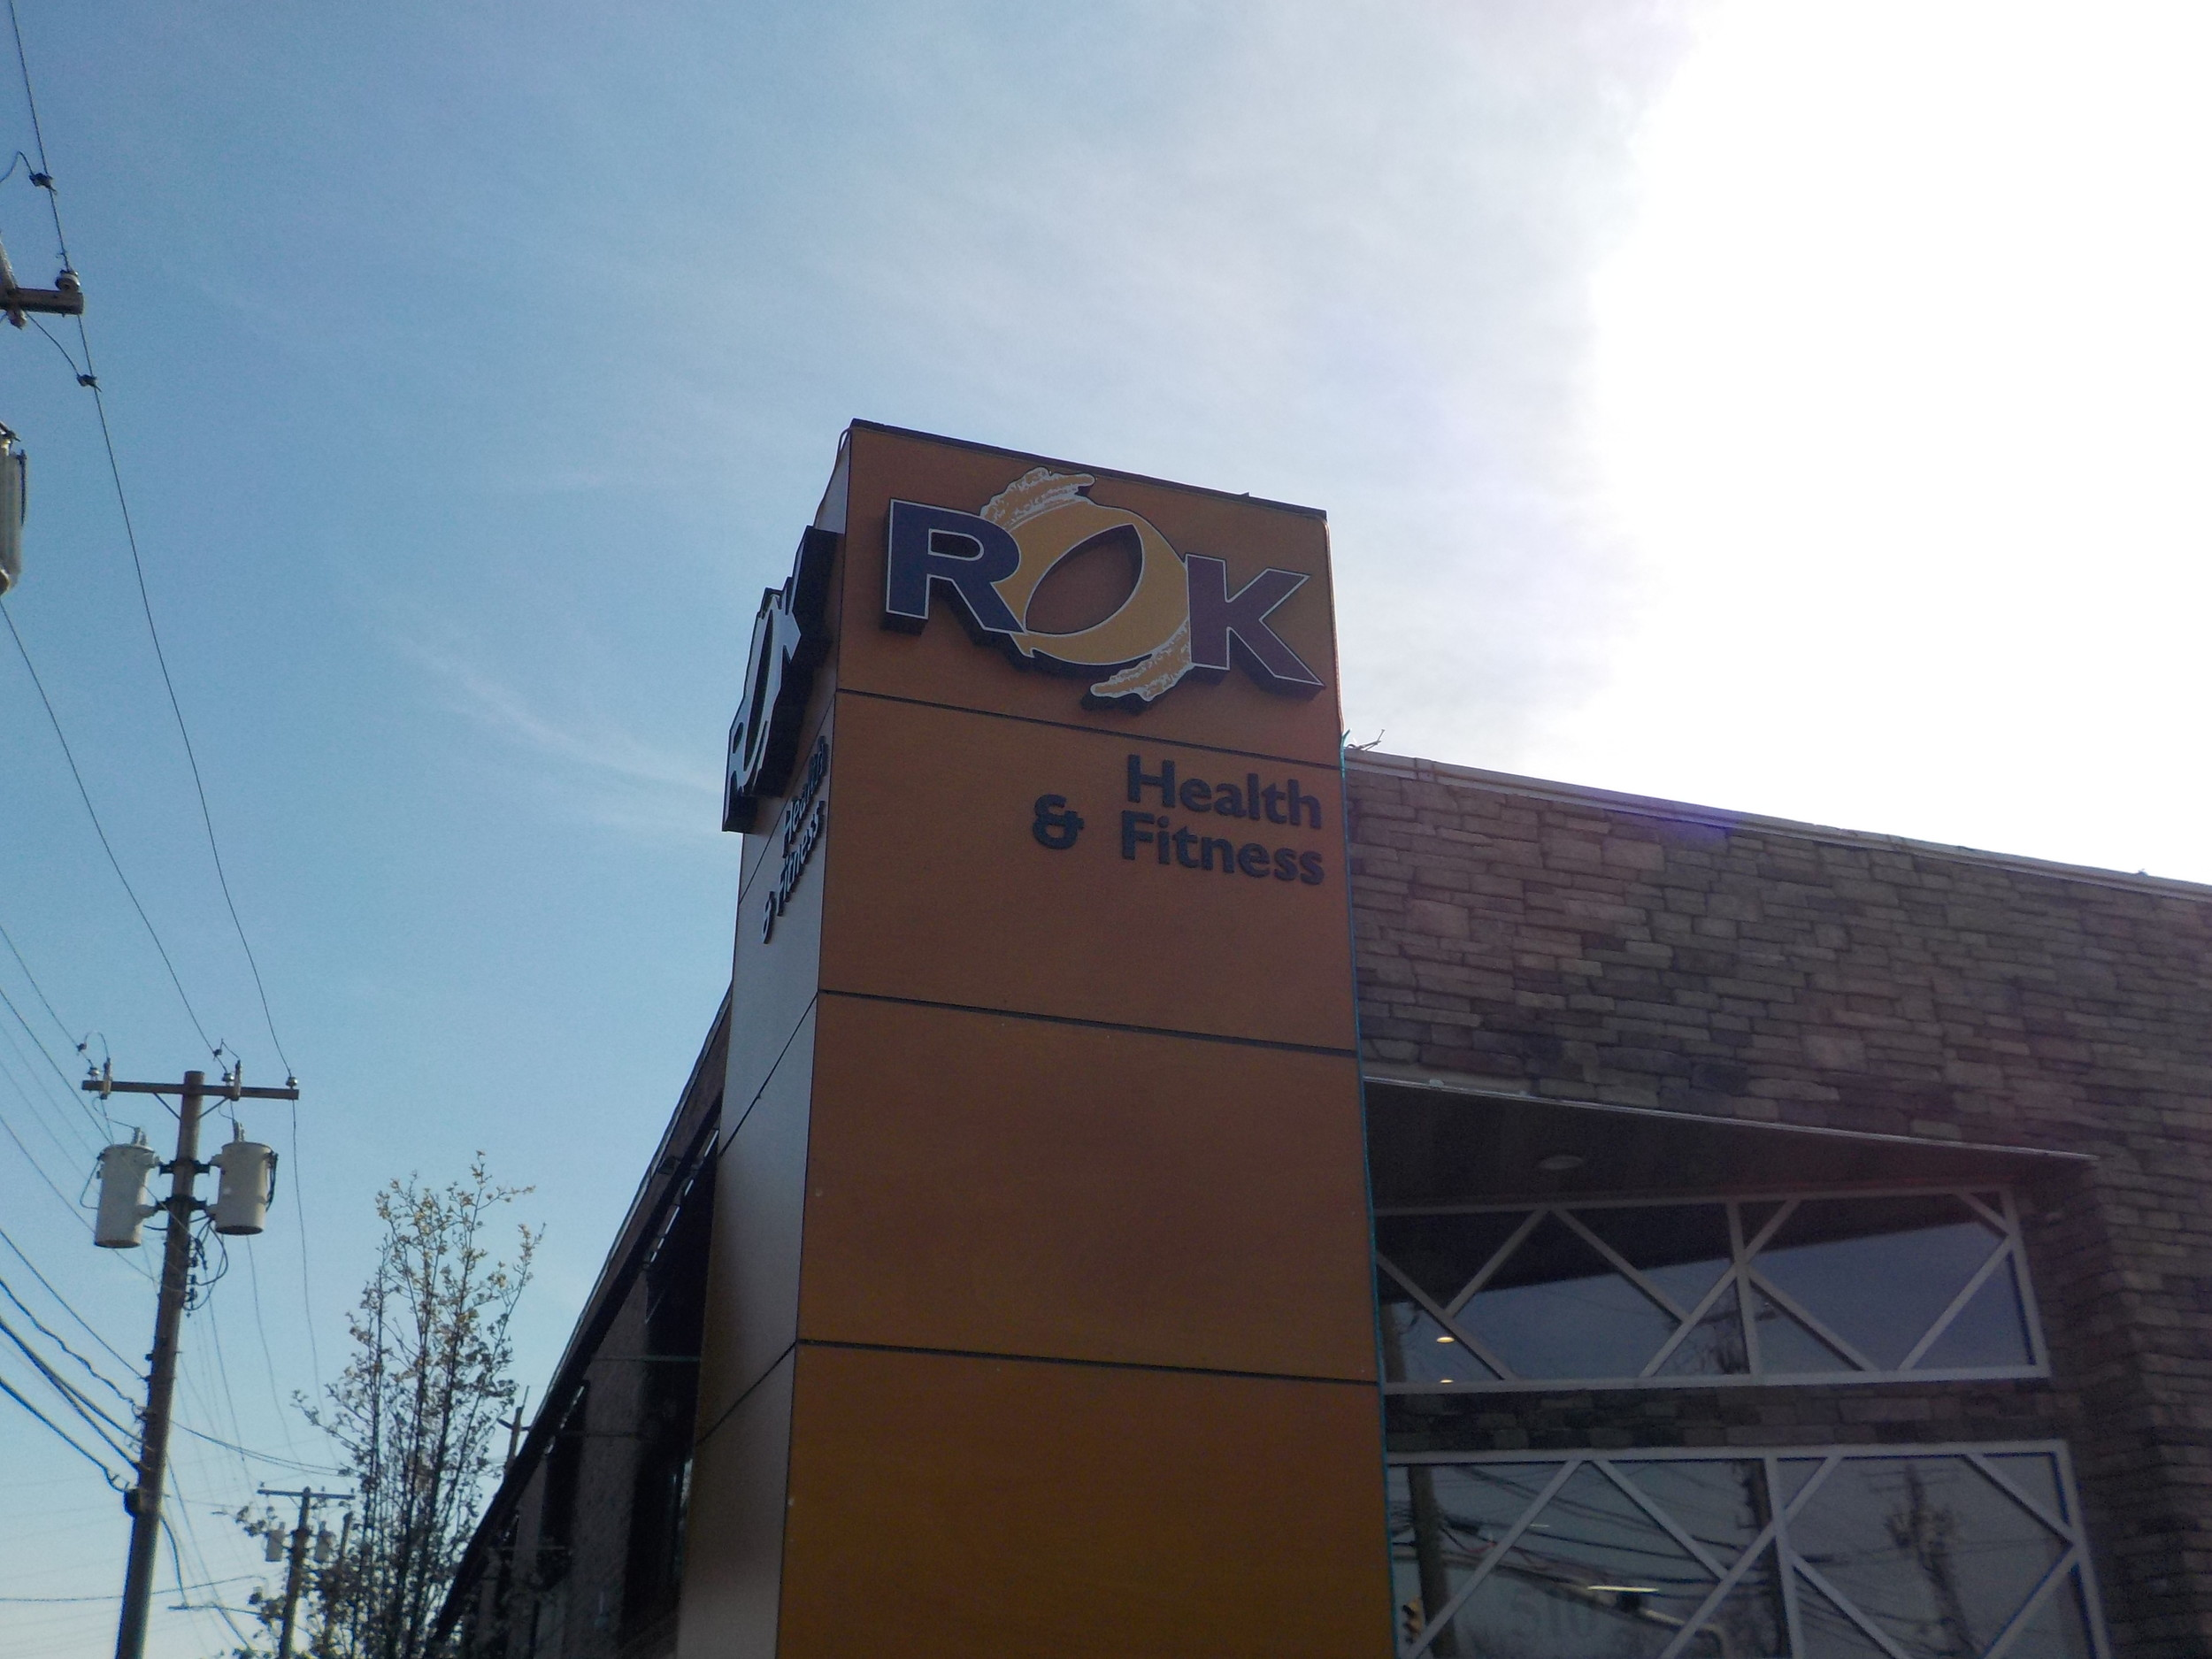 ROK Health & Fitness has been a part of the East Rockaway community ever since it opened its doors for the first time in January 2012.